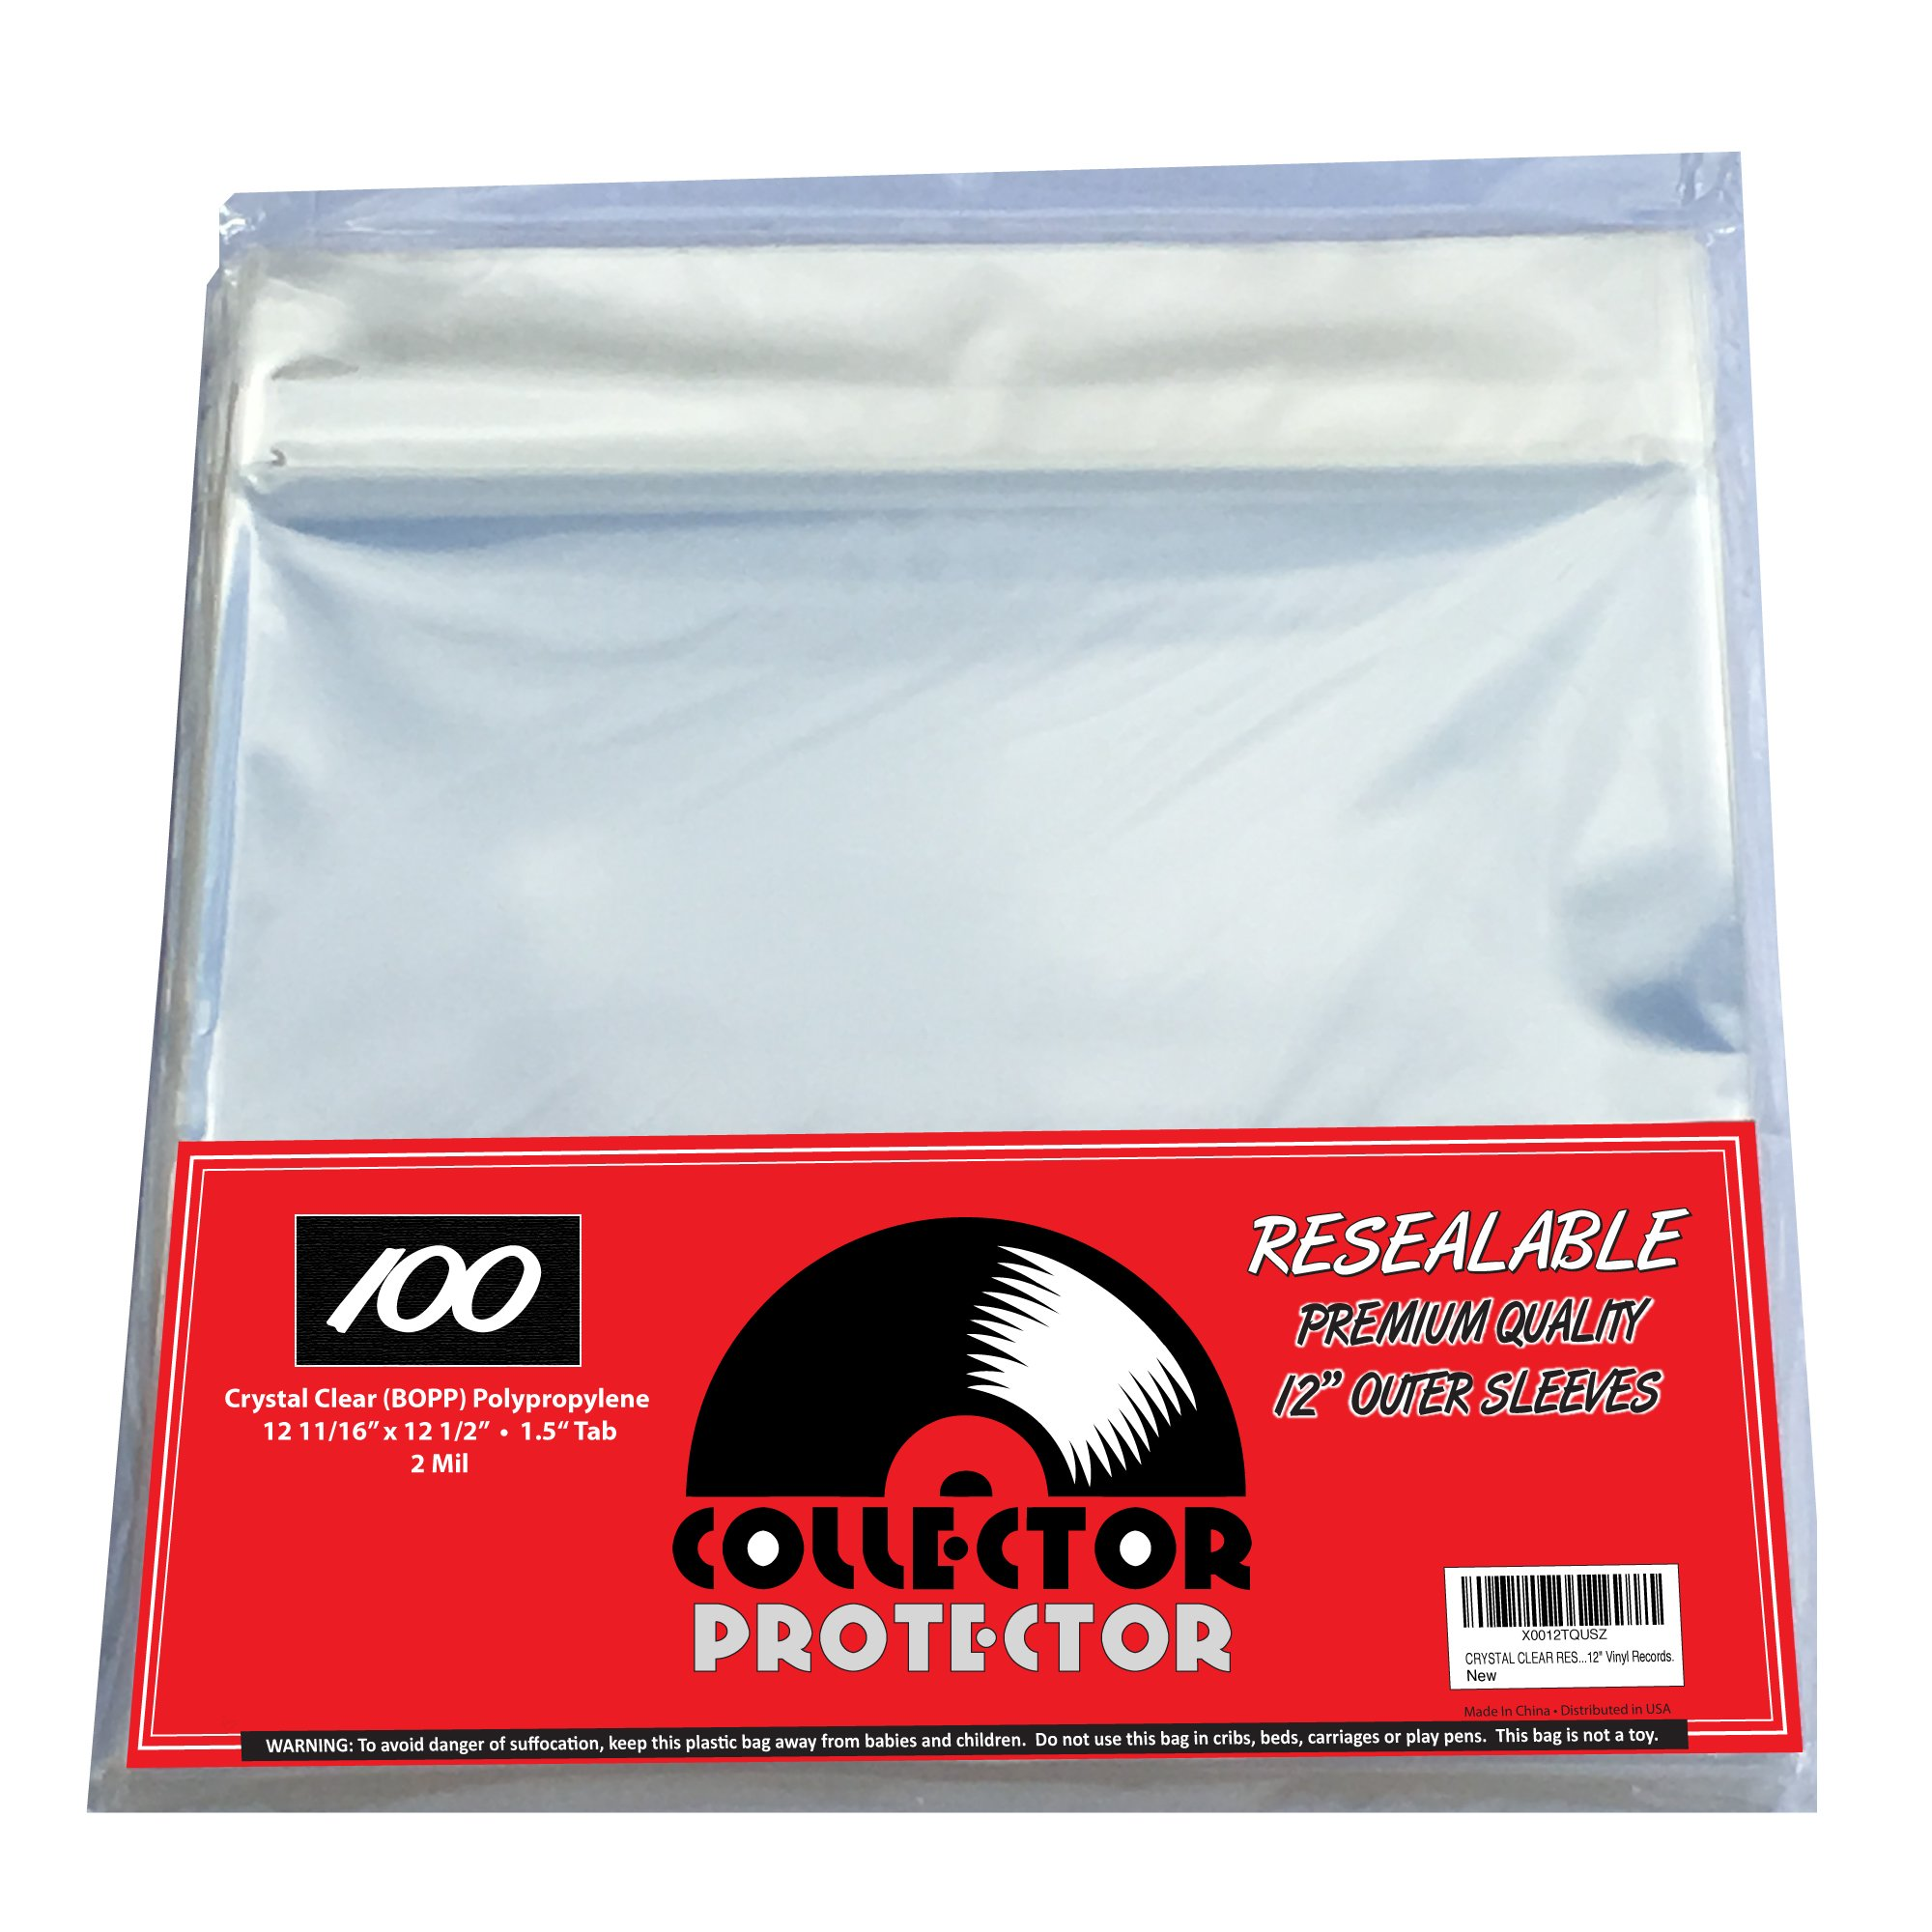 Premium Record Sleeves For Your 12'' Record Covers. (100) Crystal Clear No Haze Outer Record Sleeves With Resealable Flap For Complete Protection Of Your Album Covers